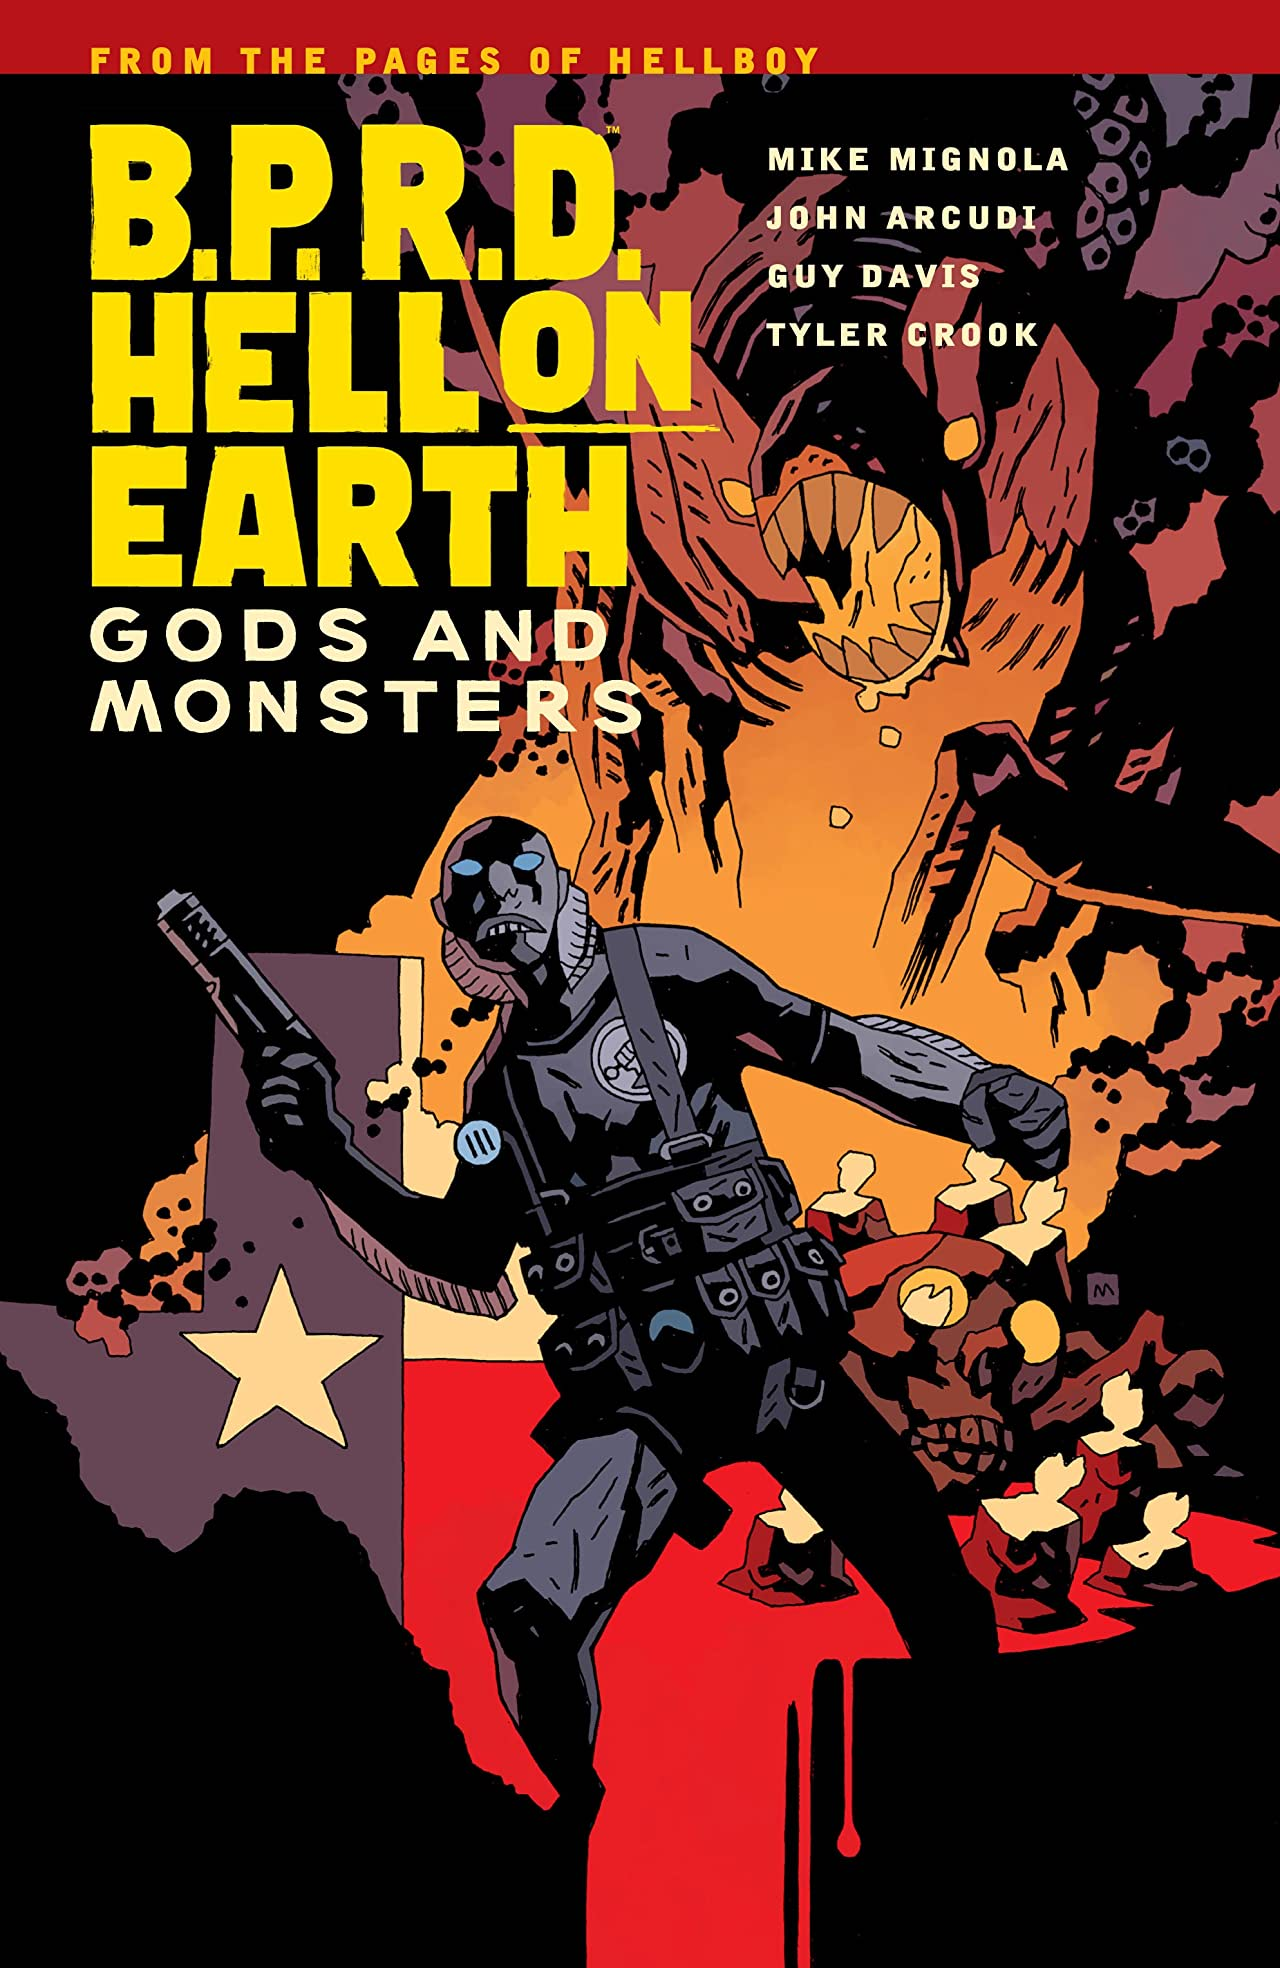 B.P.R.D. Hell on Earth Vol. 2: Gods and Monsters